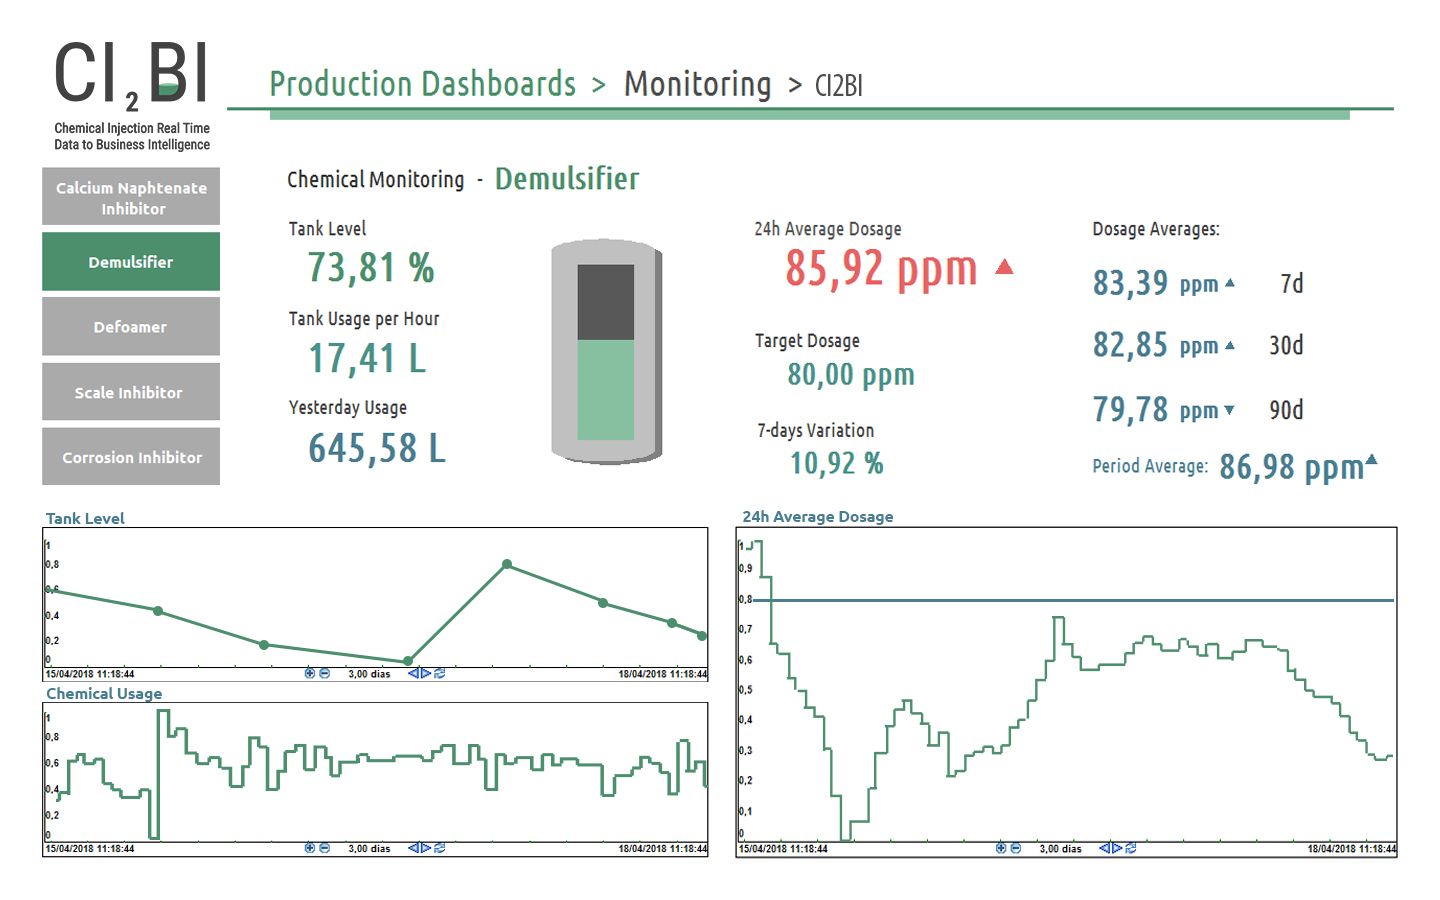 Chemical Injection Dashboards